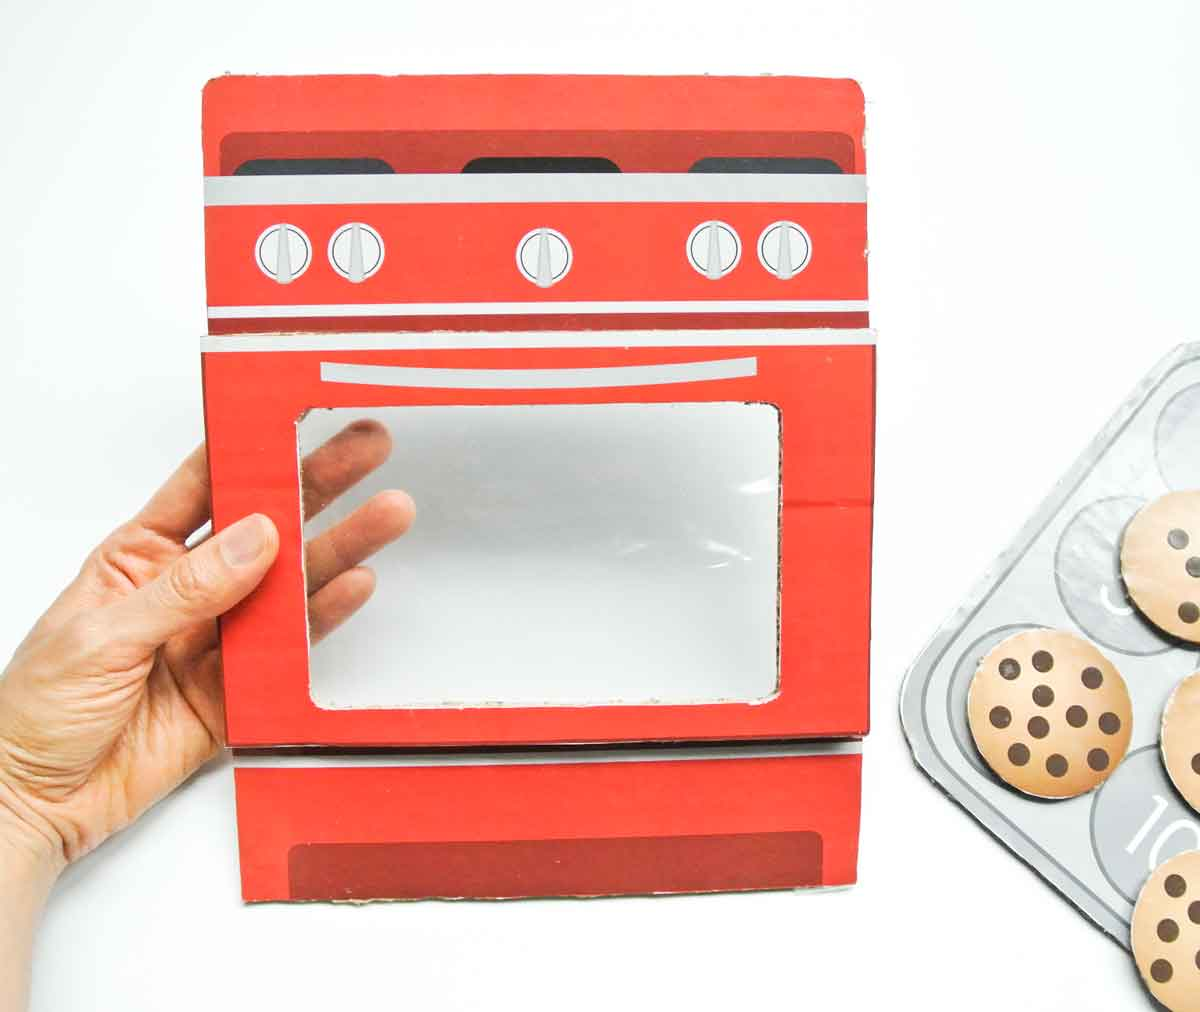 Finished oven for toddler number matching game